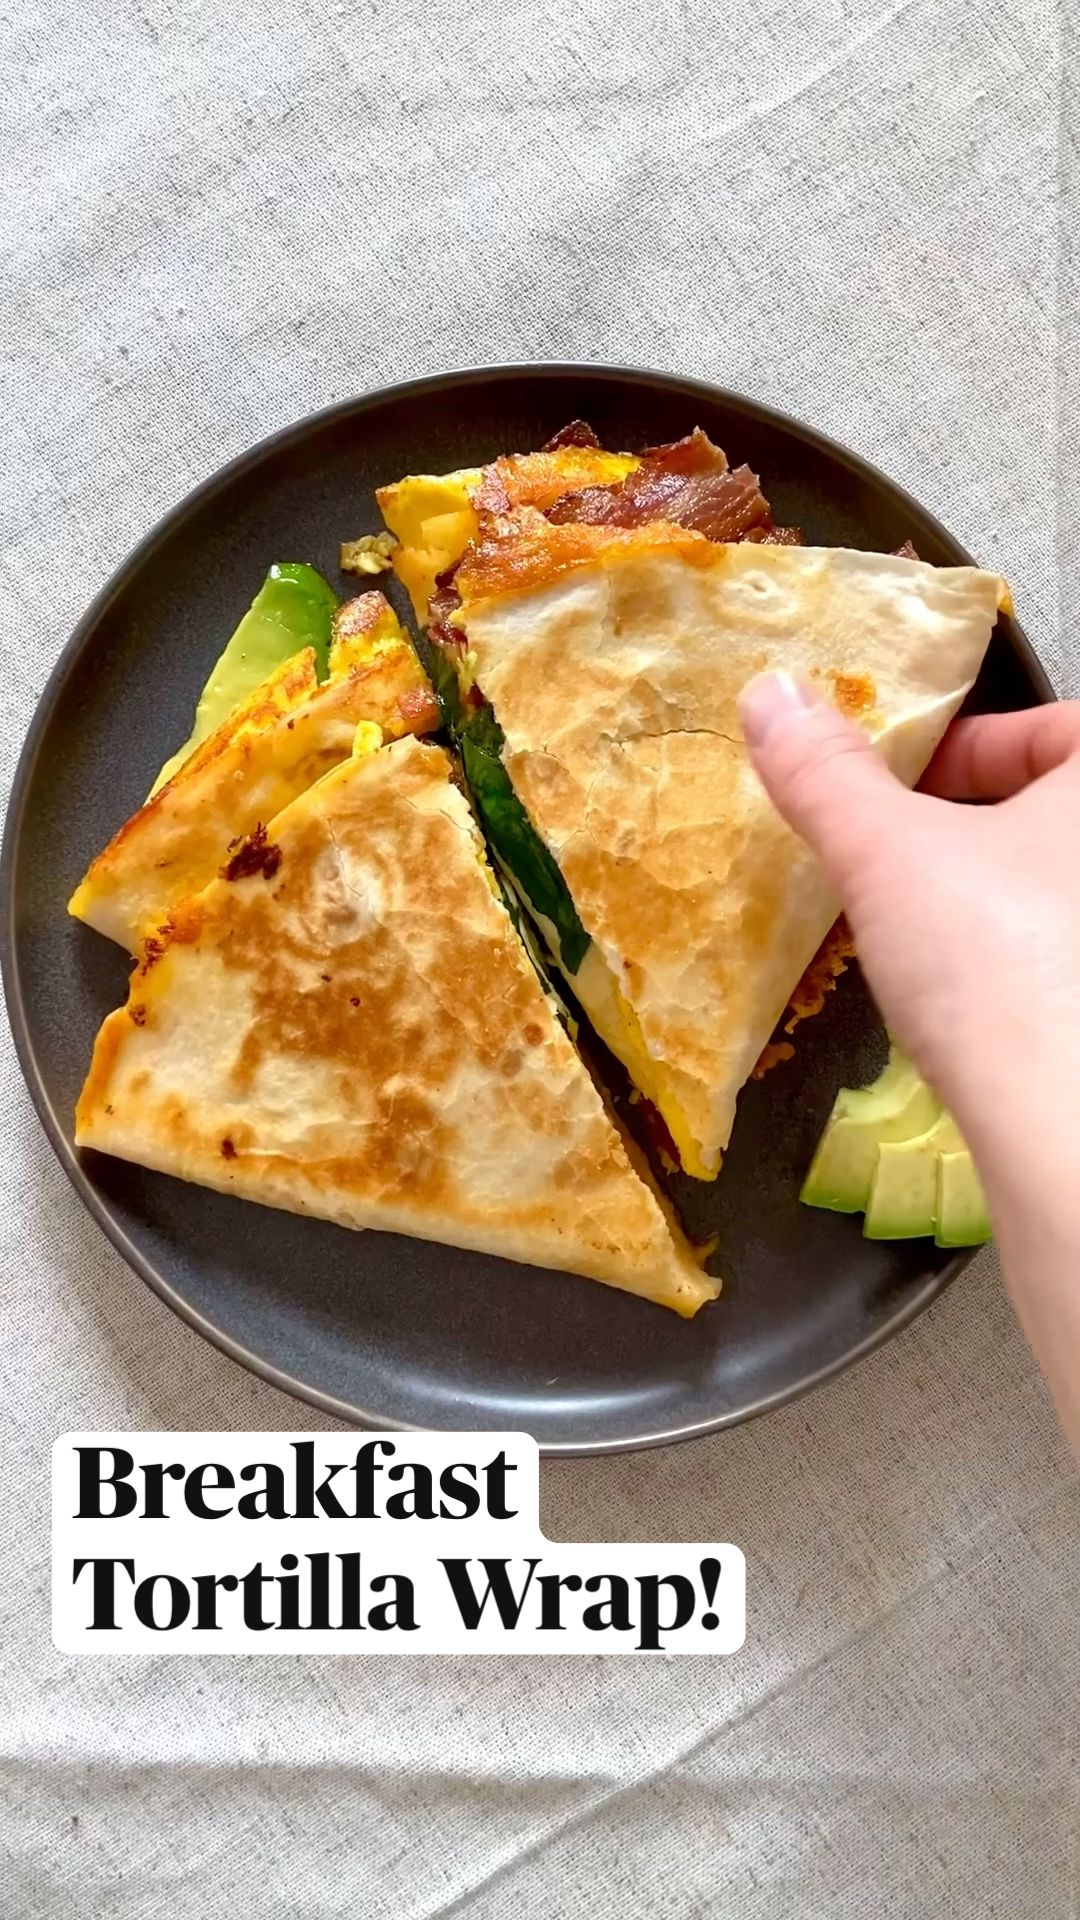 Breakfast Tortilla Wrap!